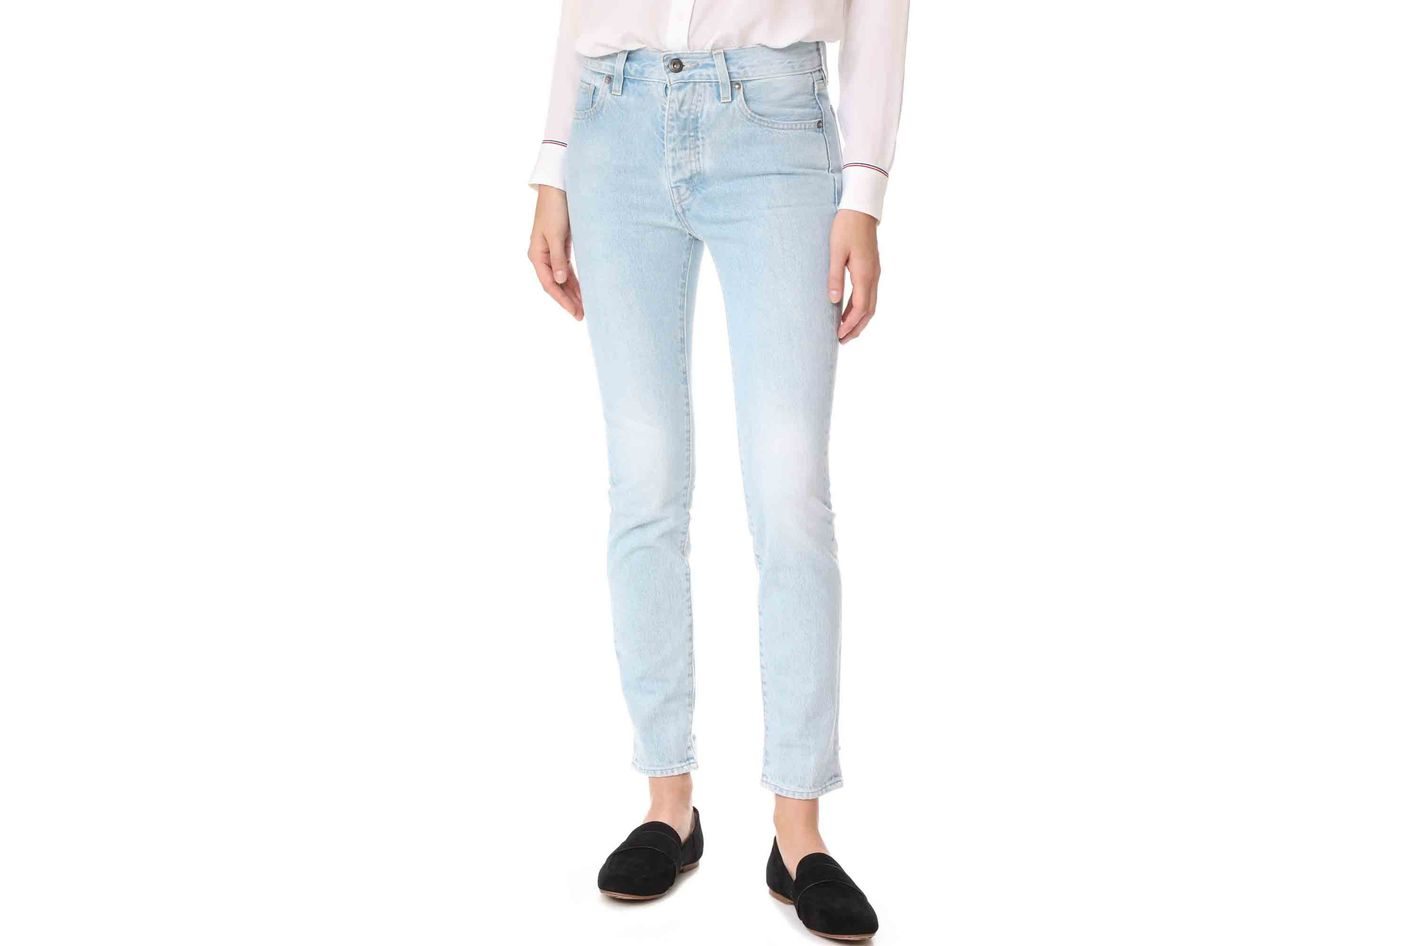 Levi's Twig High Slim Jeans